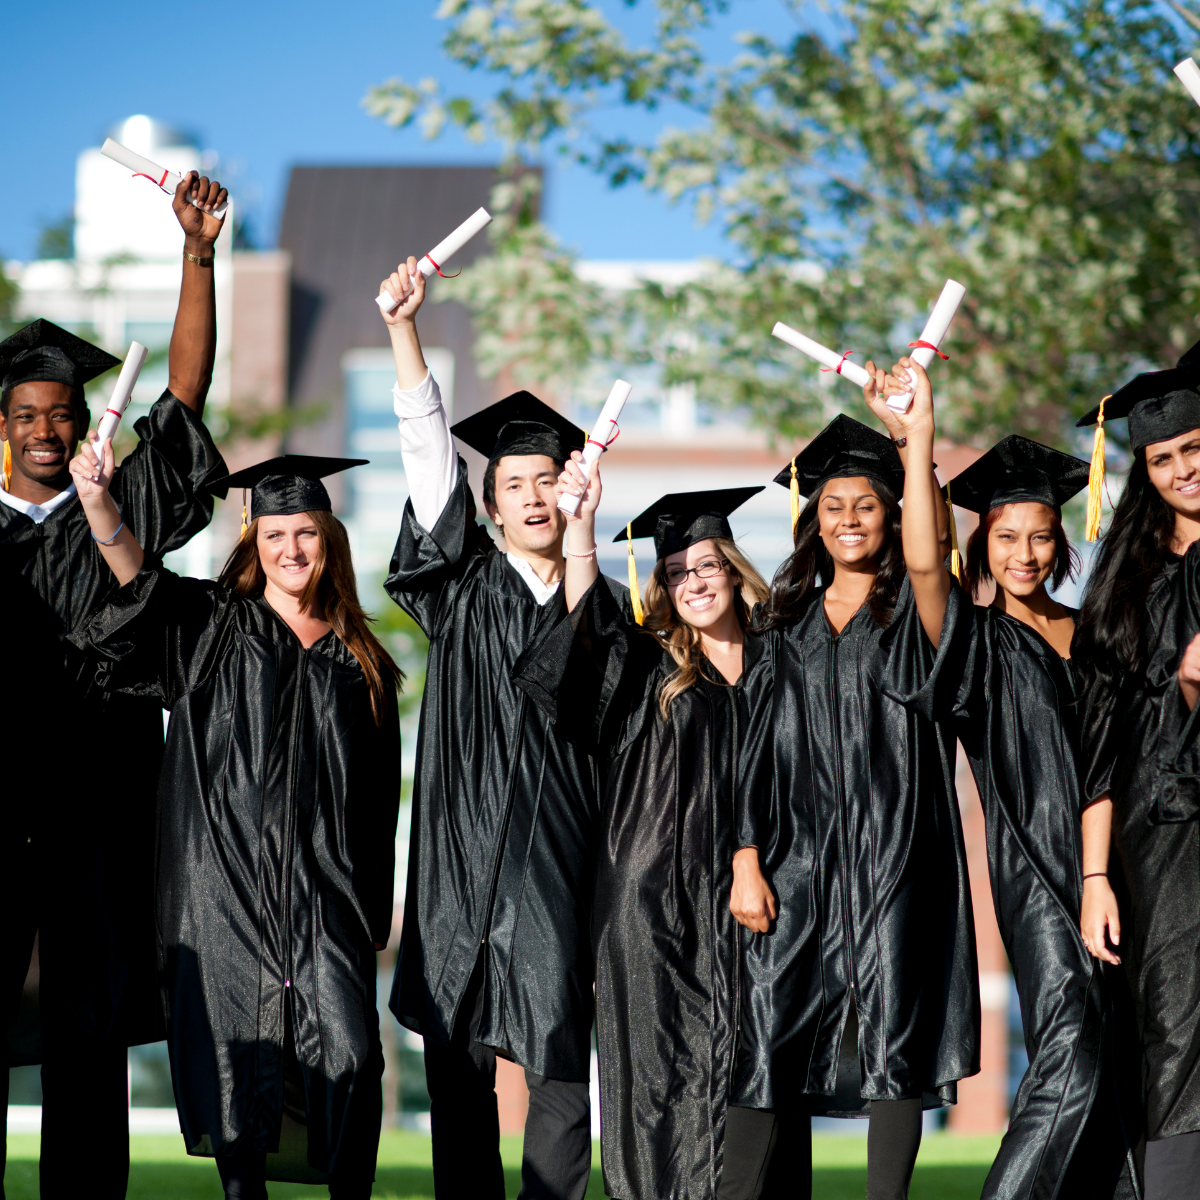 Group of grads holding up degree and smiling